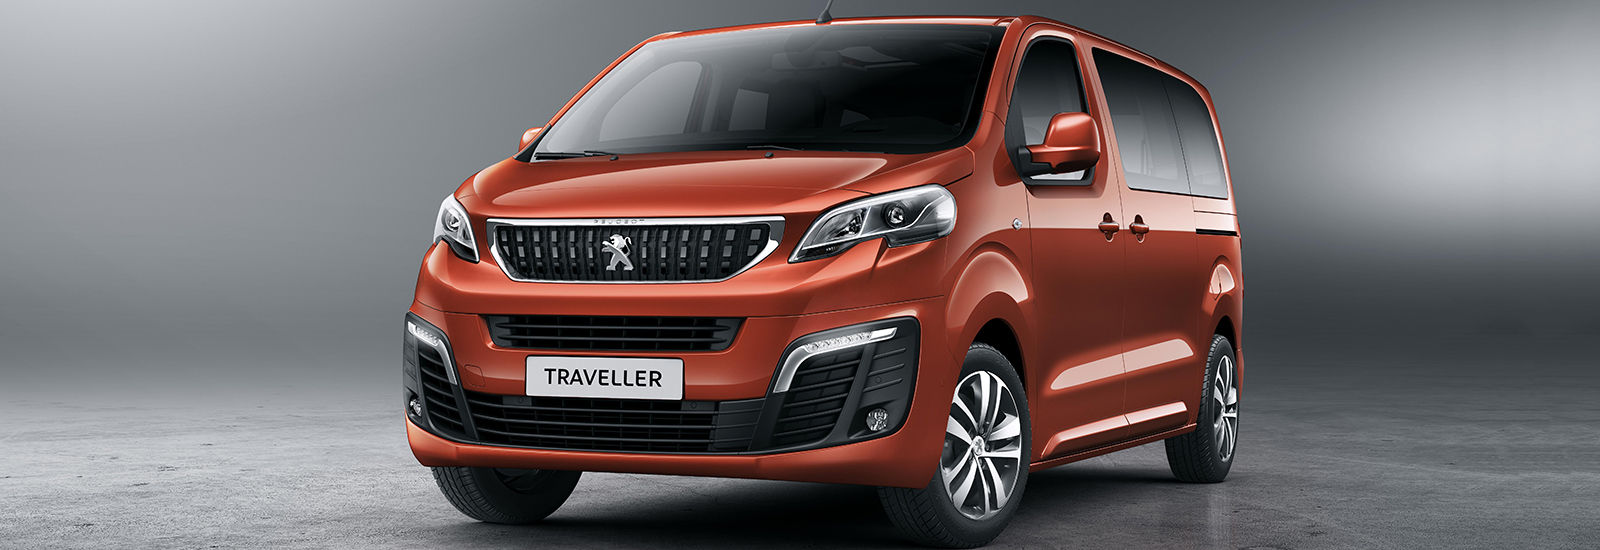 Peugeot Traveller Price, Specs And Release Date